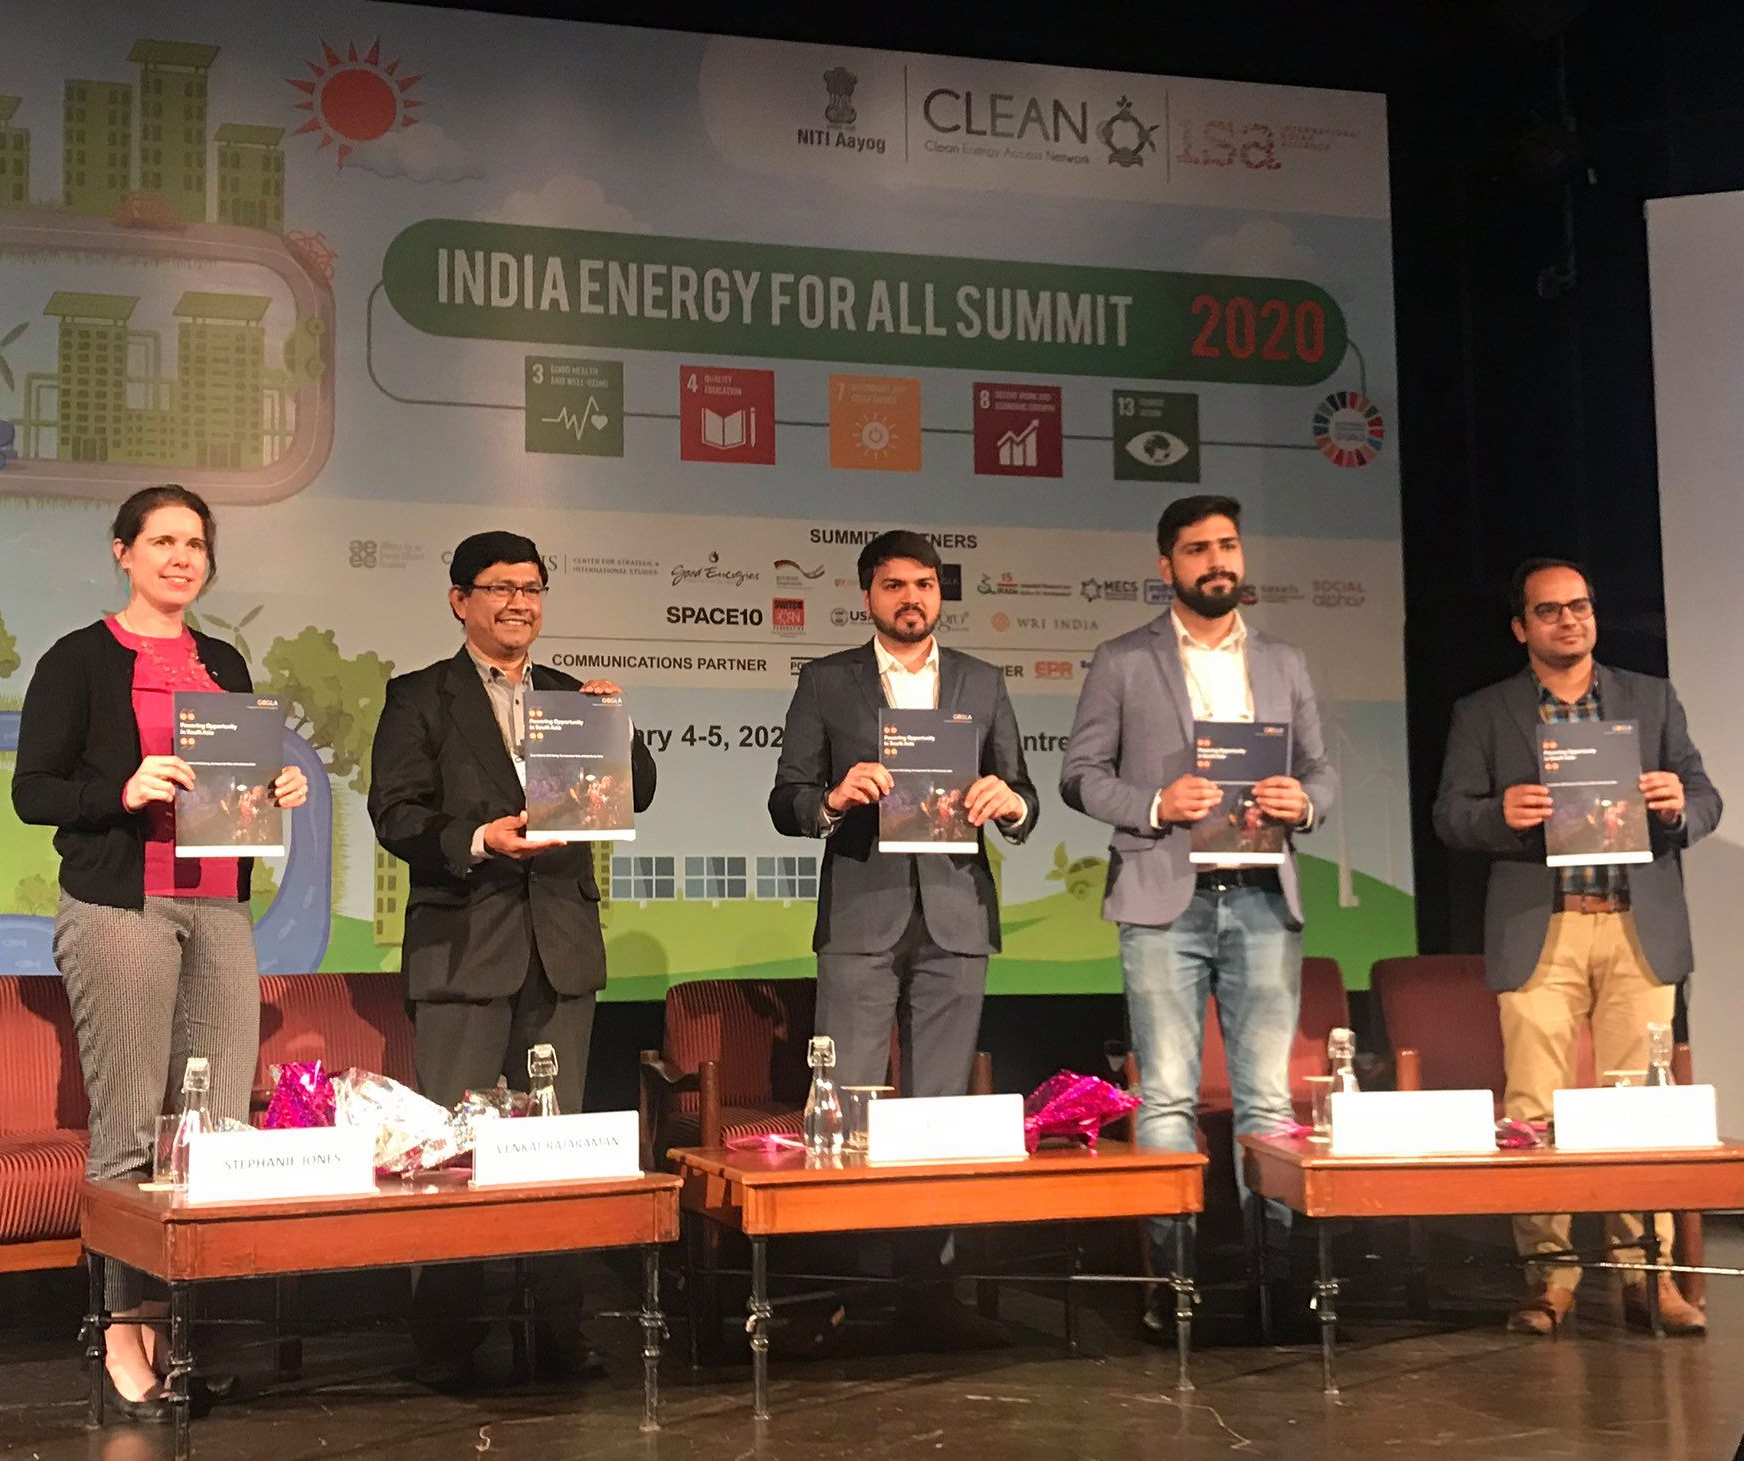 India Energy summit